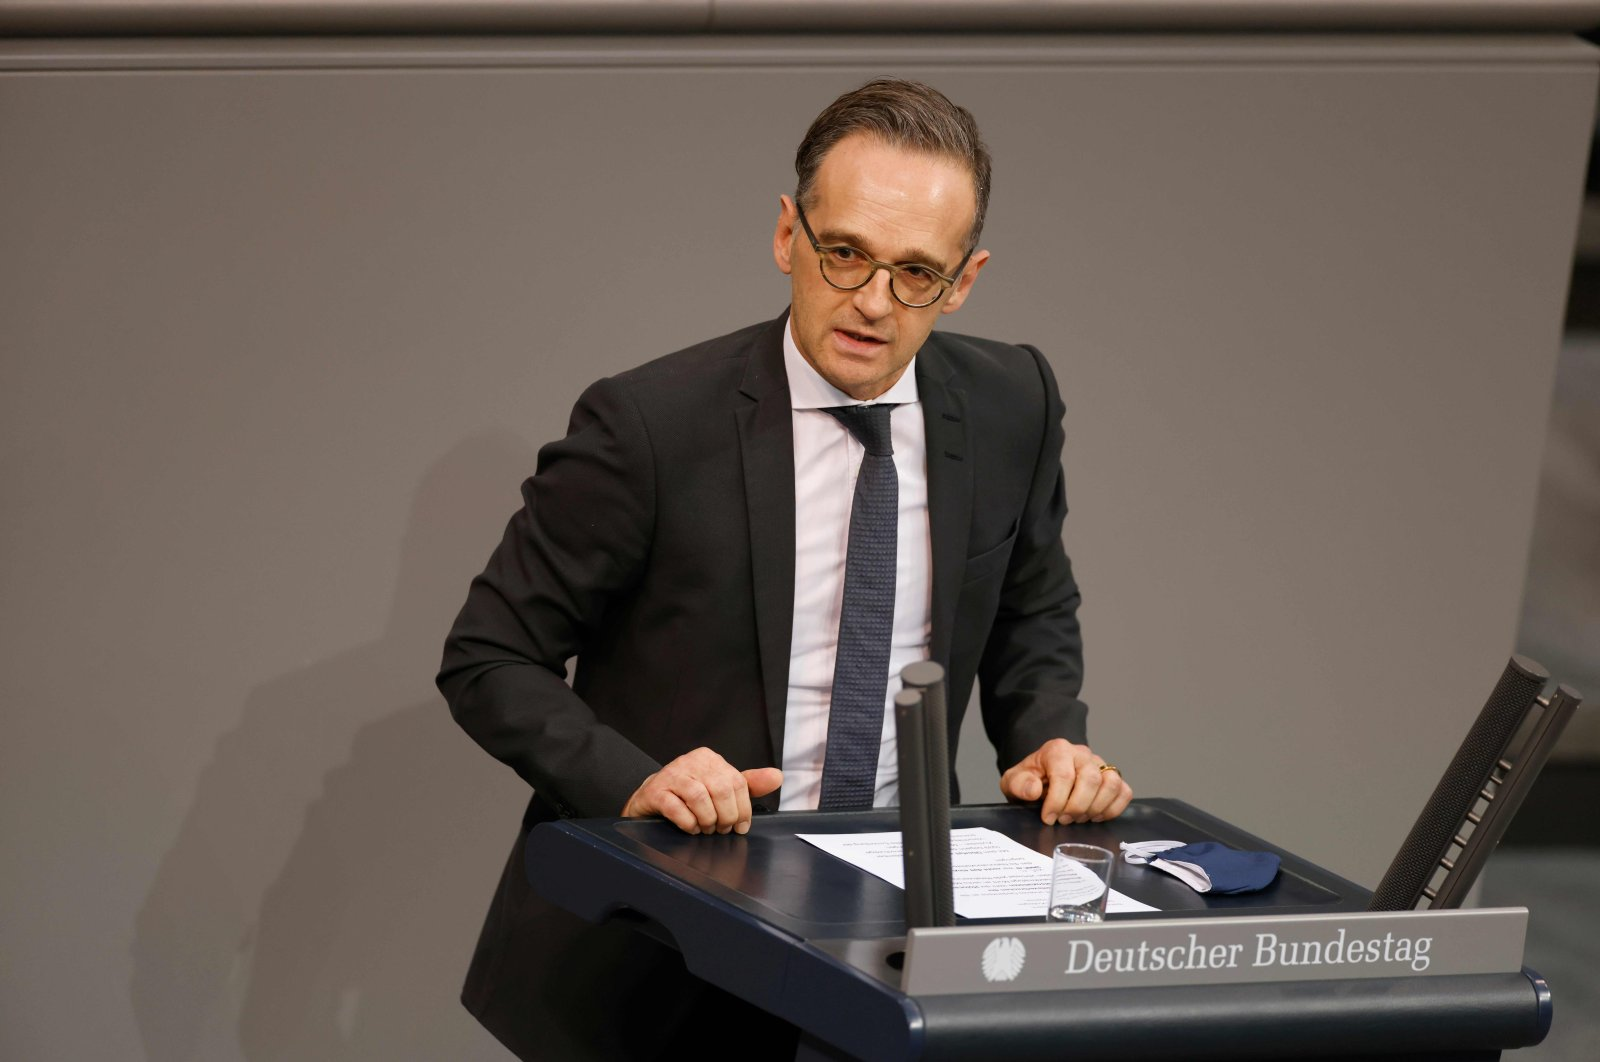 German Foreign Minister Heiko Maas speaks during a session at the Bundestag (lower house of parliament) in Berlin, Oct. 30, 2020. (AFP Photo)